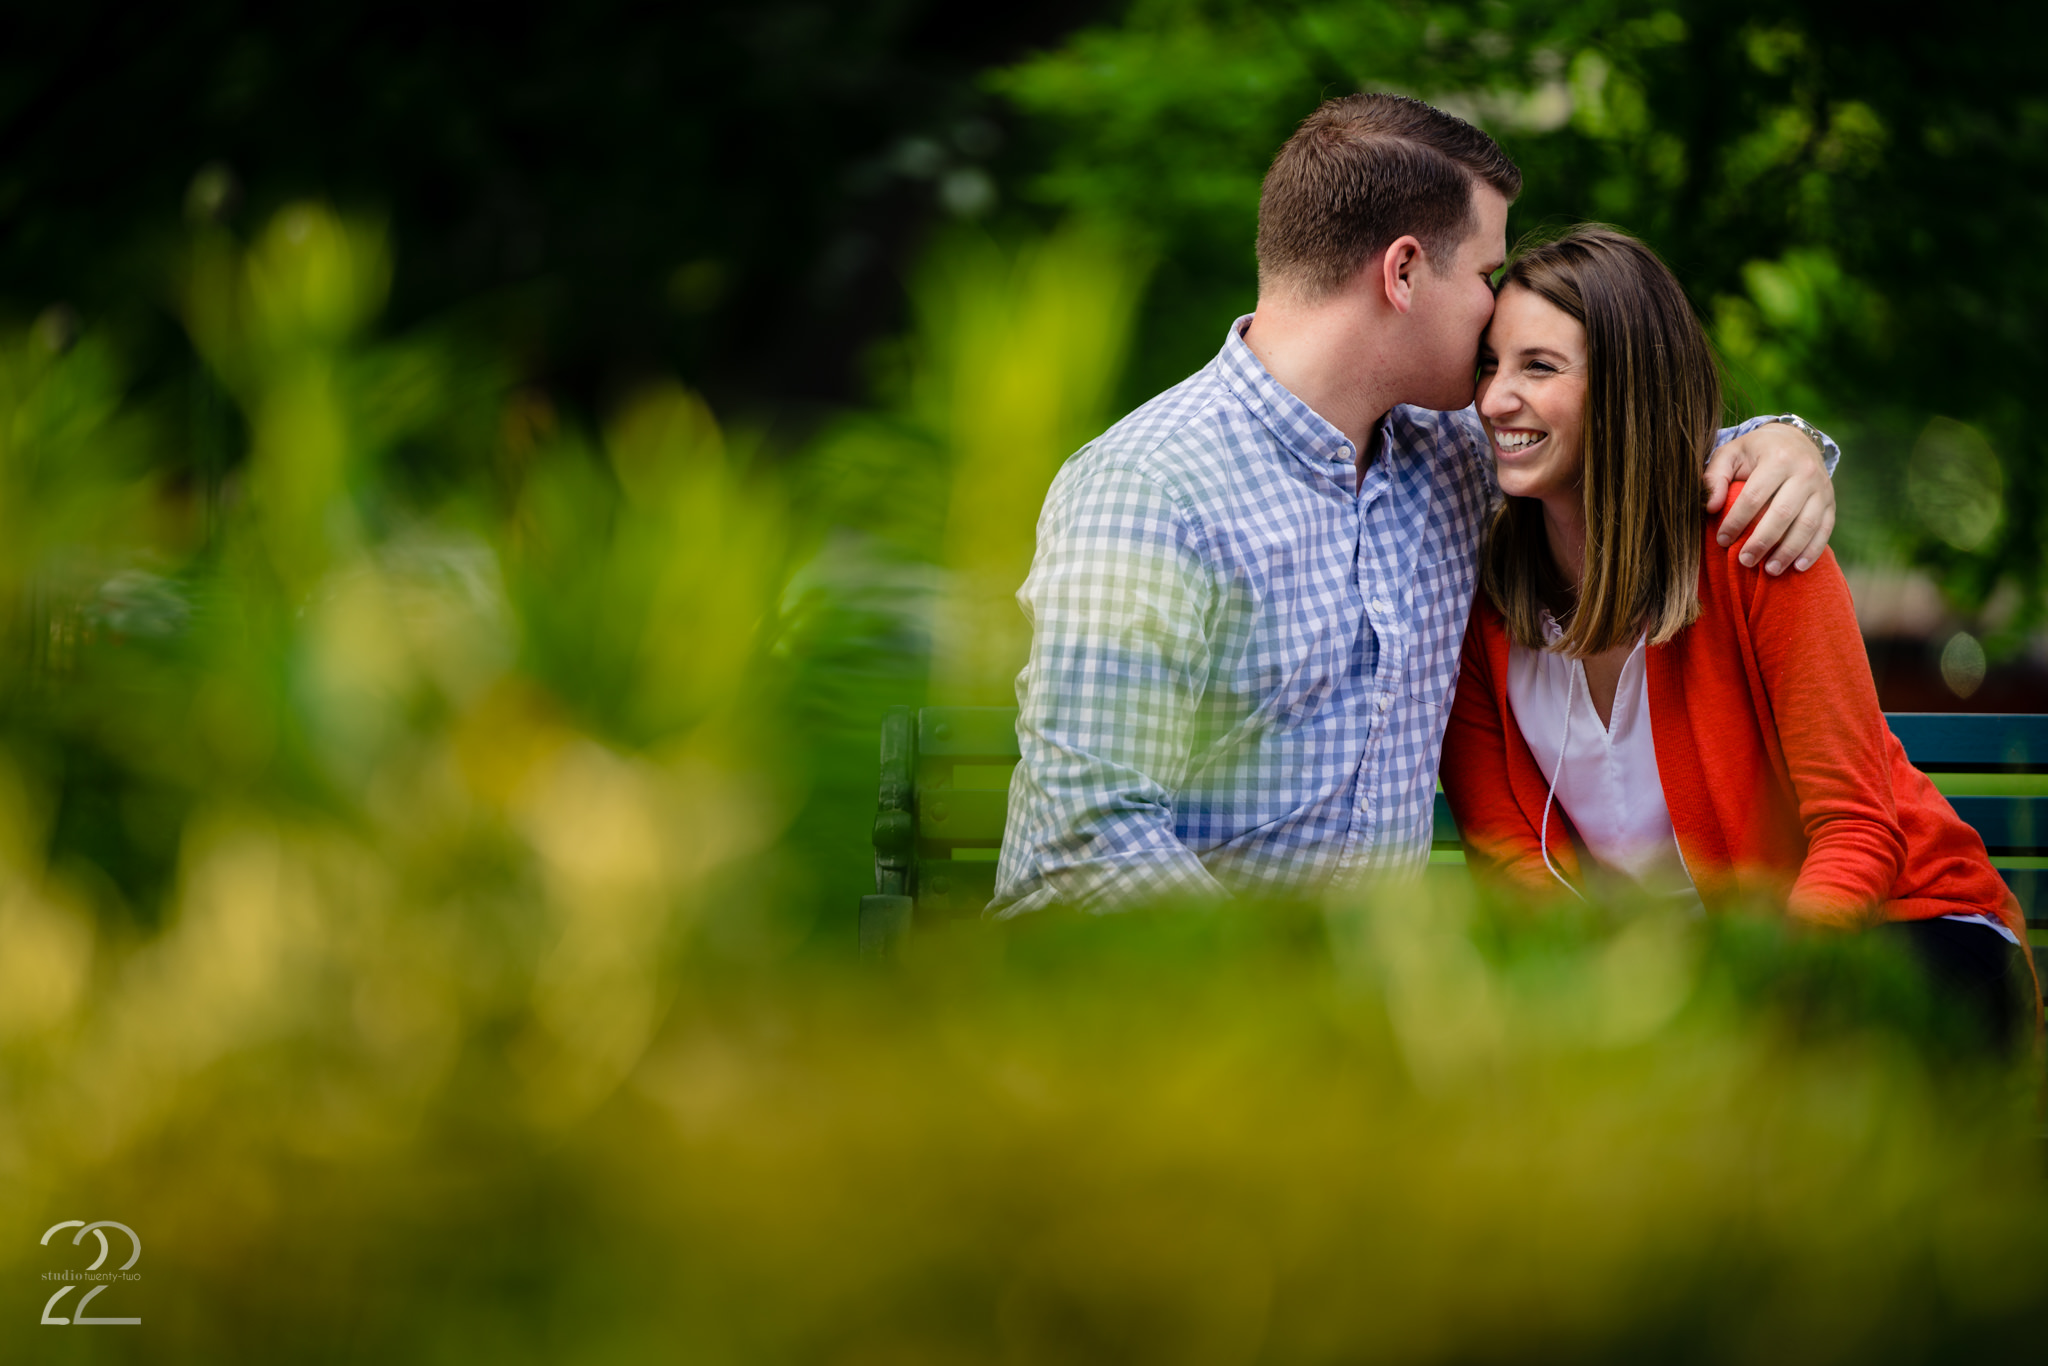 Columbus is filled with excellent locations for engagement photos. Megan loved taking Taylor and Kirsten to North Bank Park for some cozy shots at the end of their session.